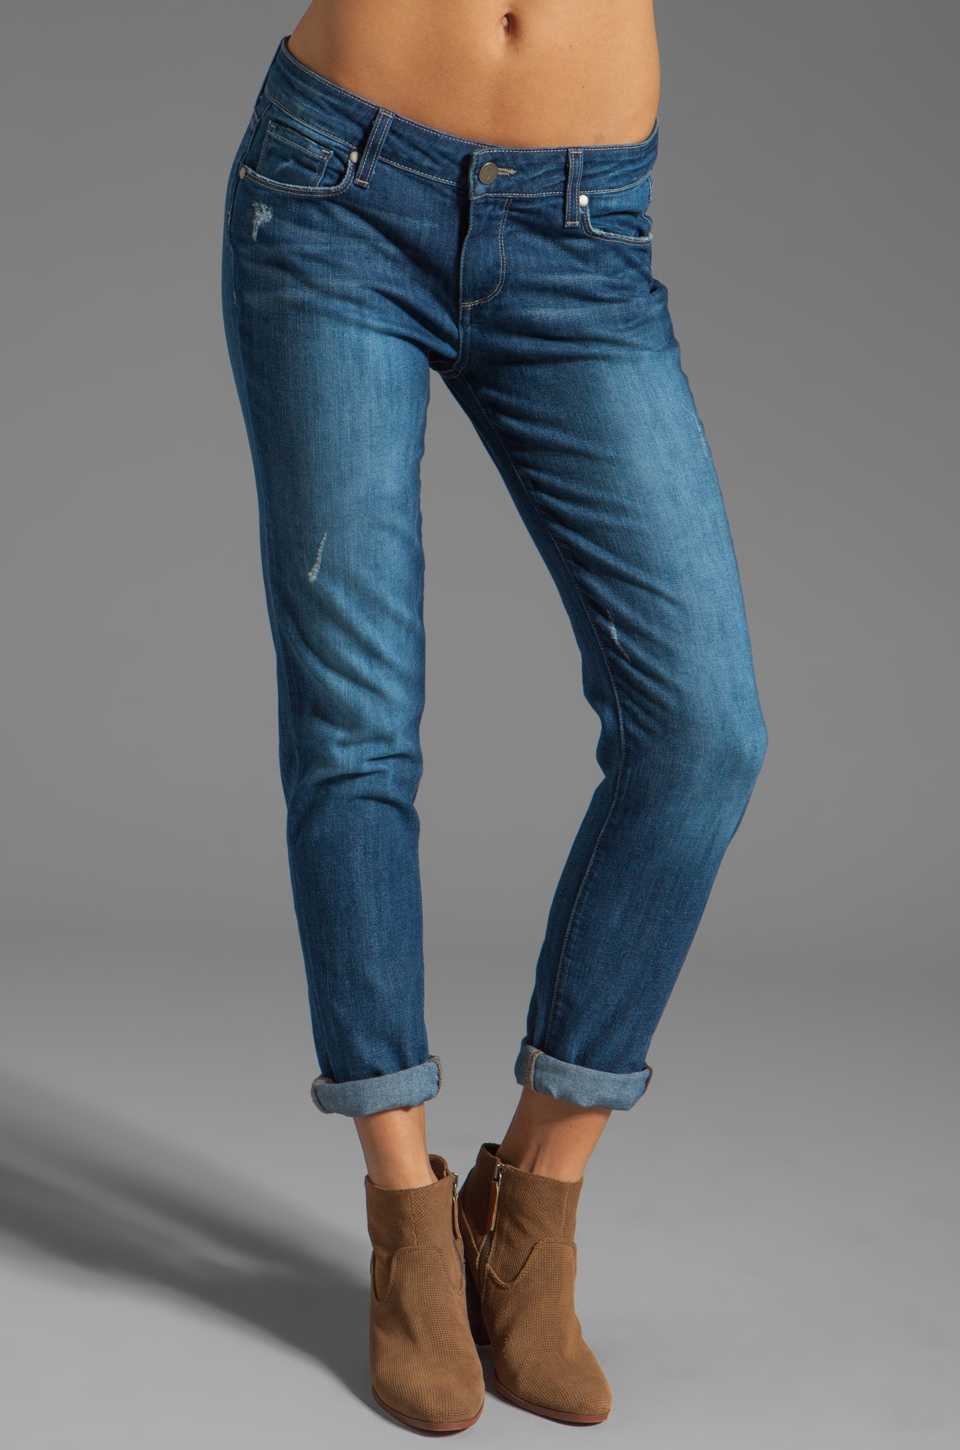 Paige Denim Jimmy Jimmy Skinny in Penelope